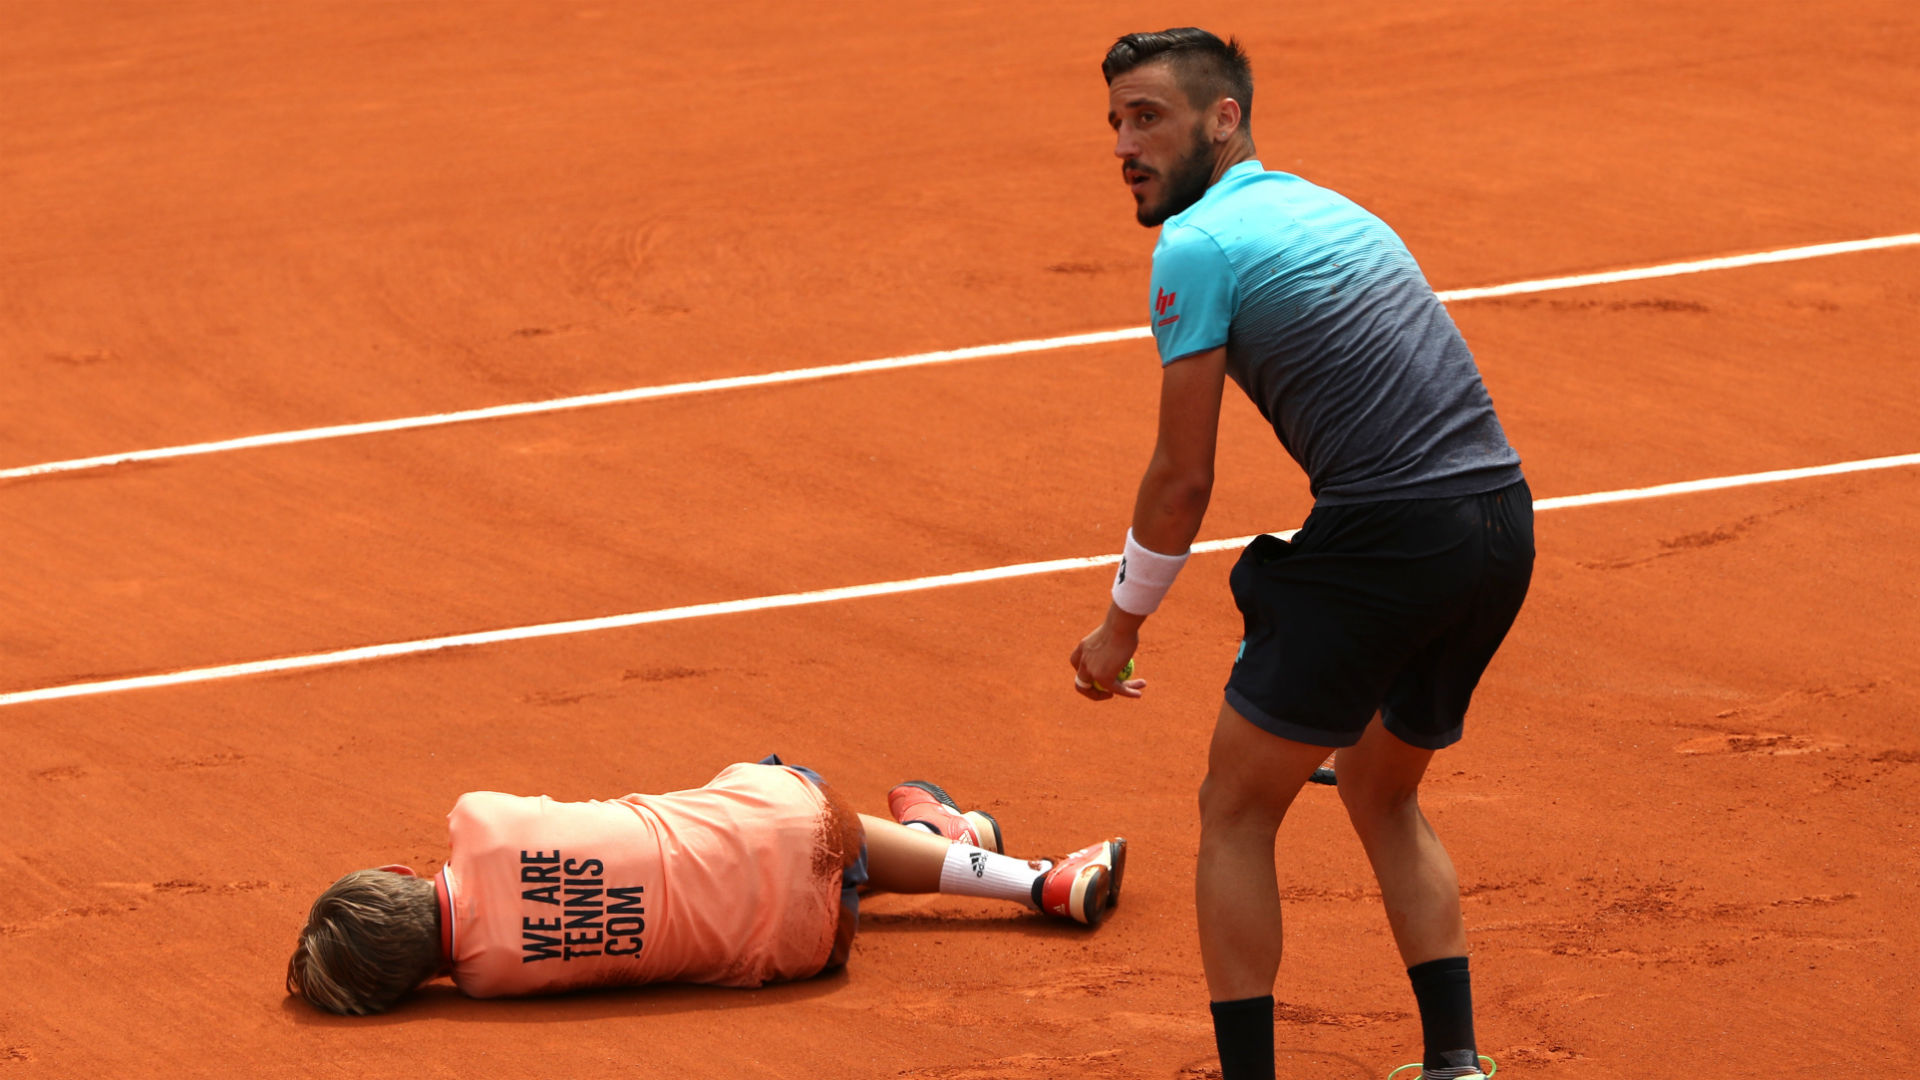 French Open Diary Damir Dzumhur Wipes Out Ball Boy Raging Novak Djokovic Sees Red Mist Sporting News Australia